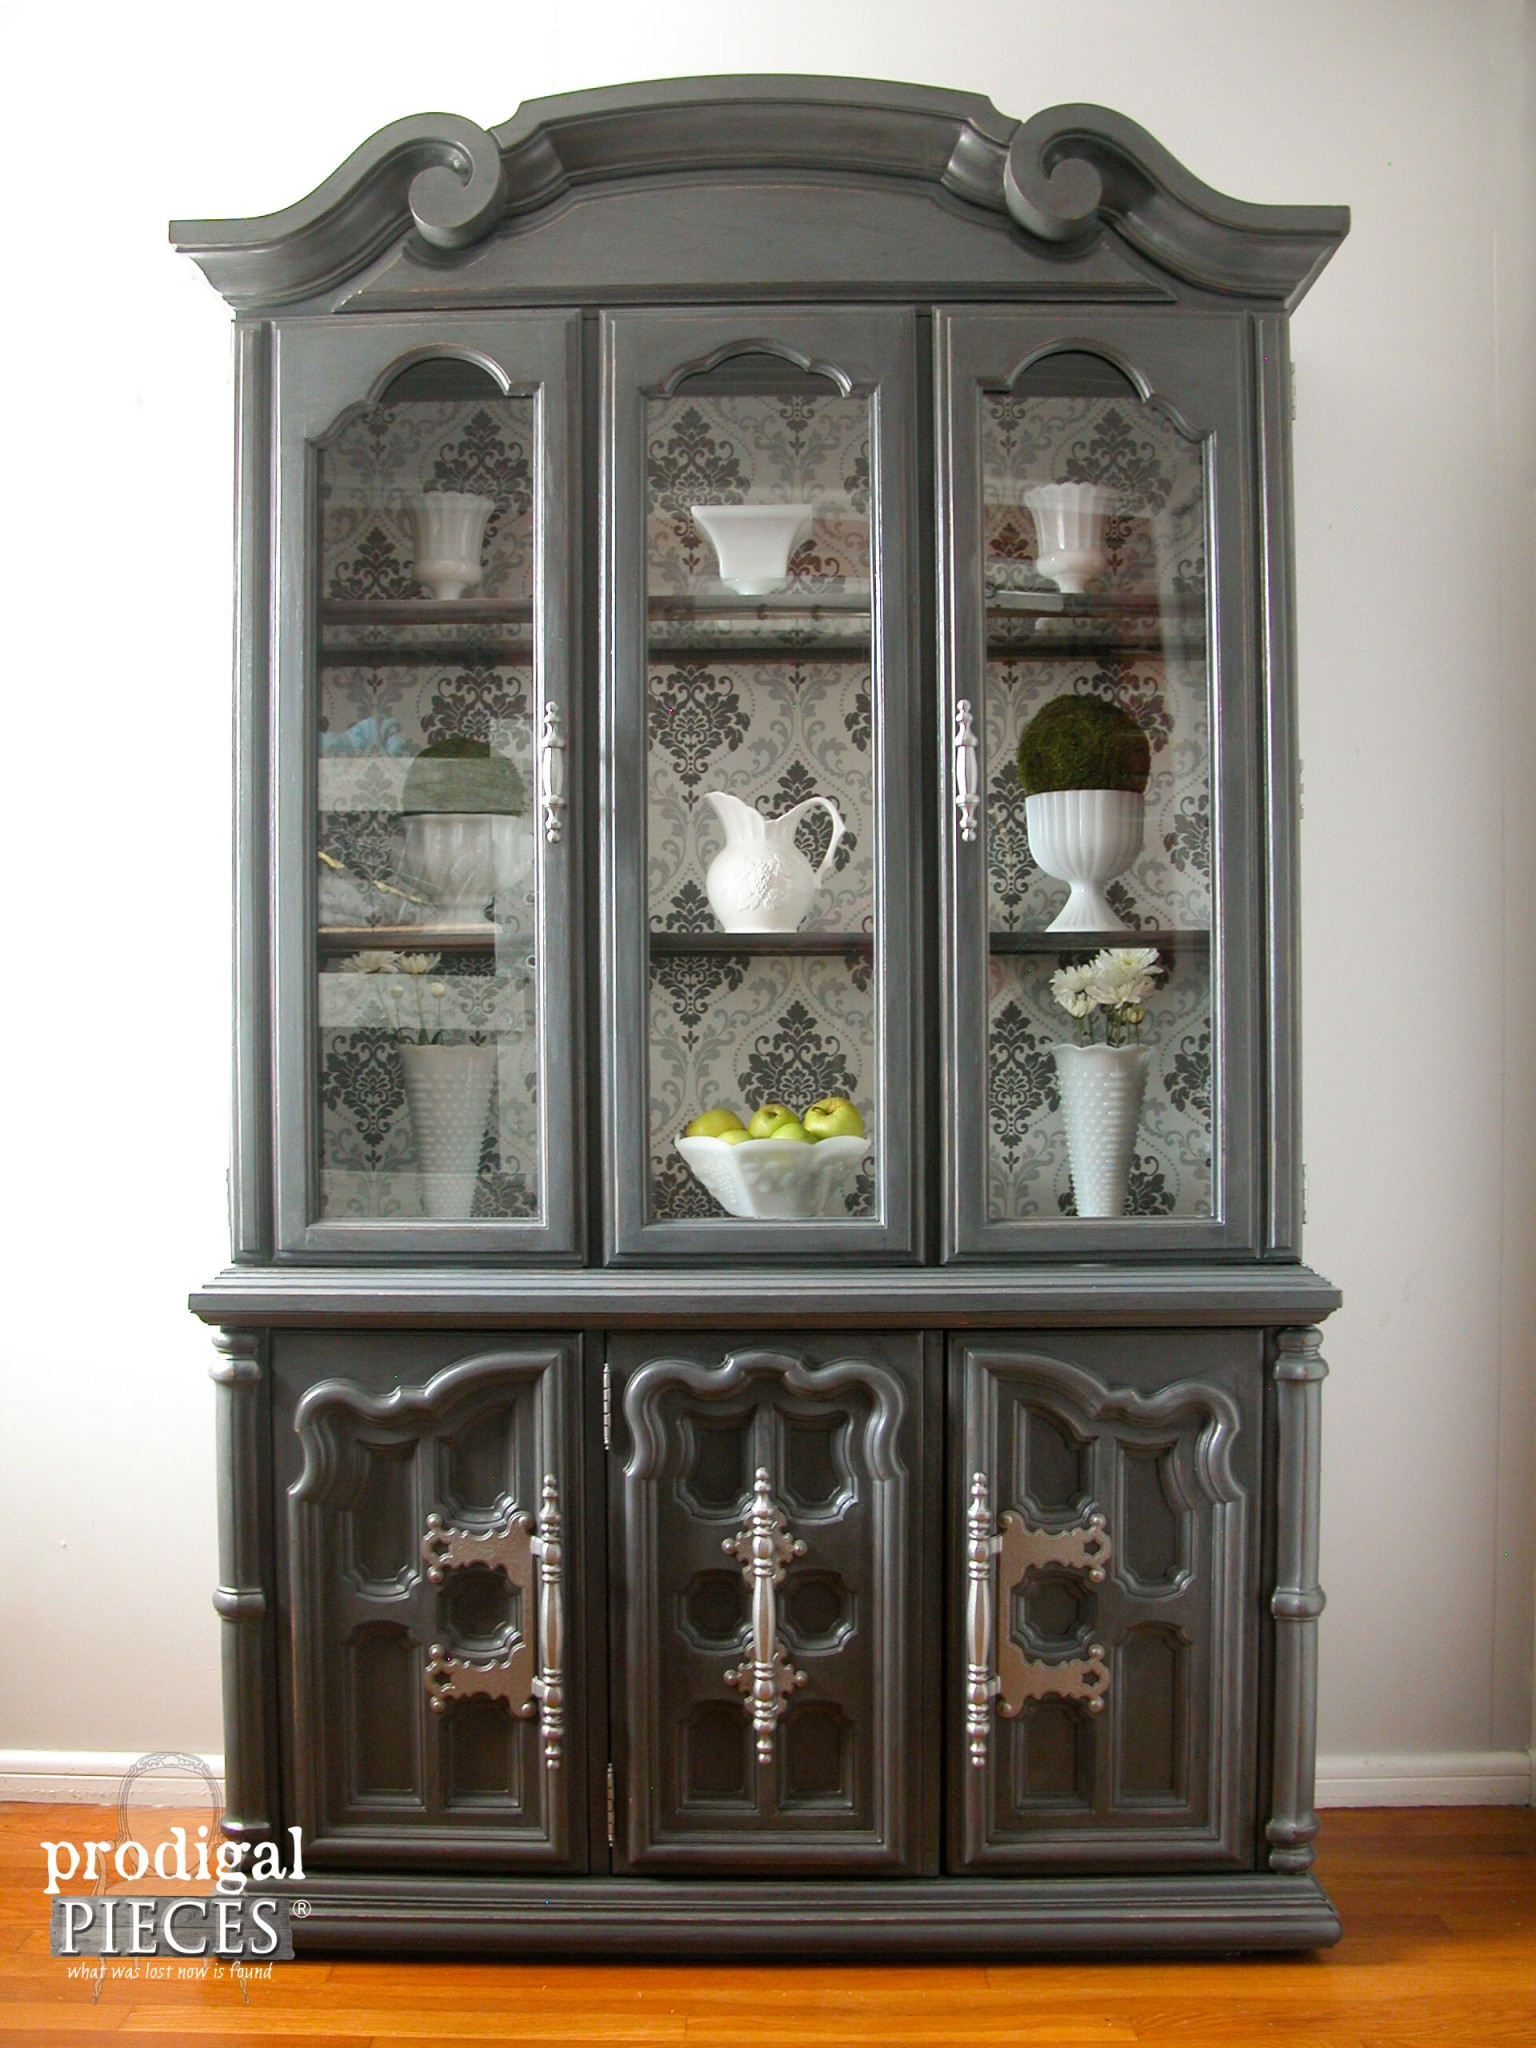 China Cabinet Gets Updated with Wallpaper by Prodigal Pieces | www.prodigalpieces.com